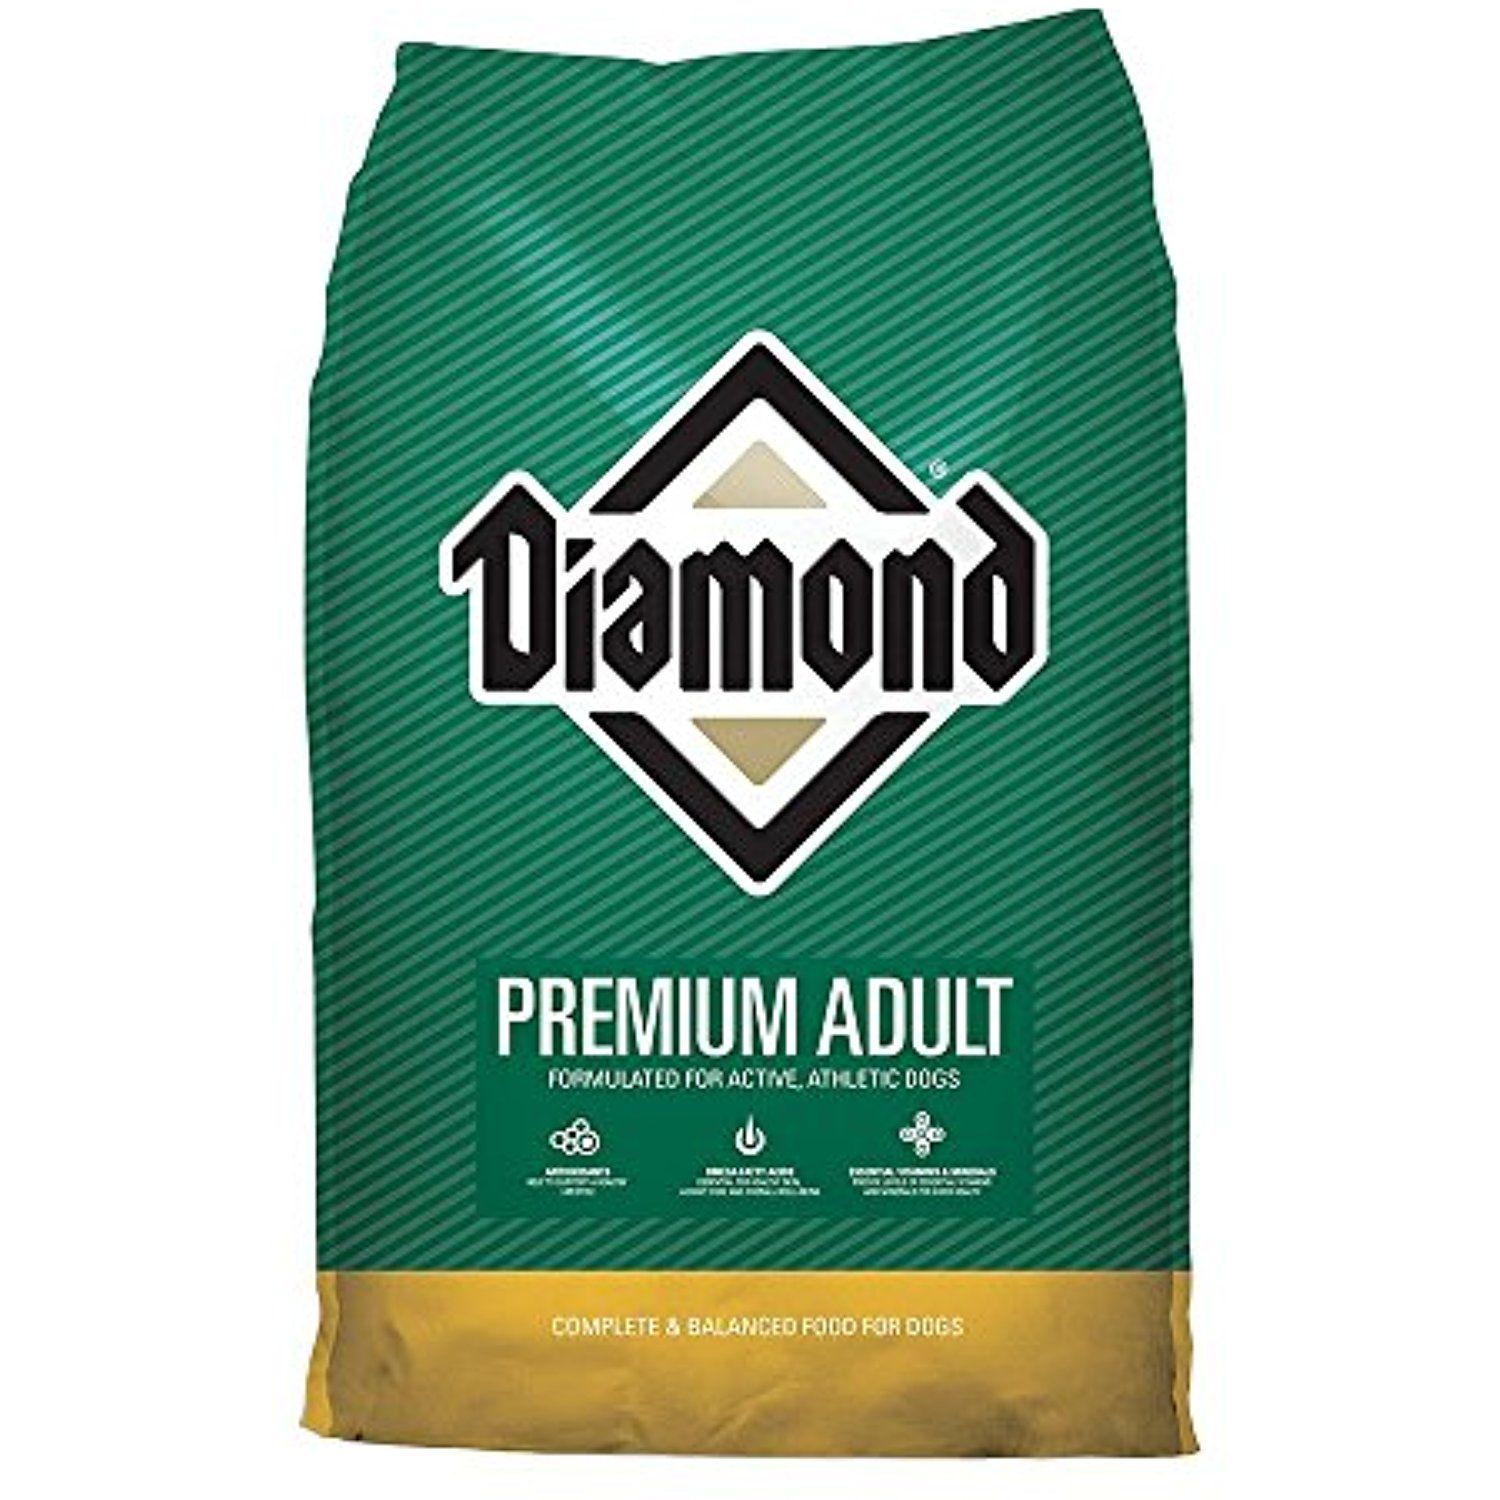 44 Lb Diamond Premium Bonus Bag ~~~ You can click image for